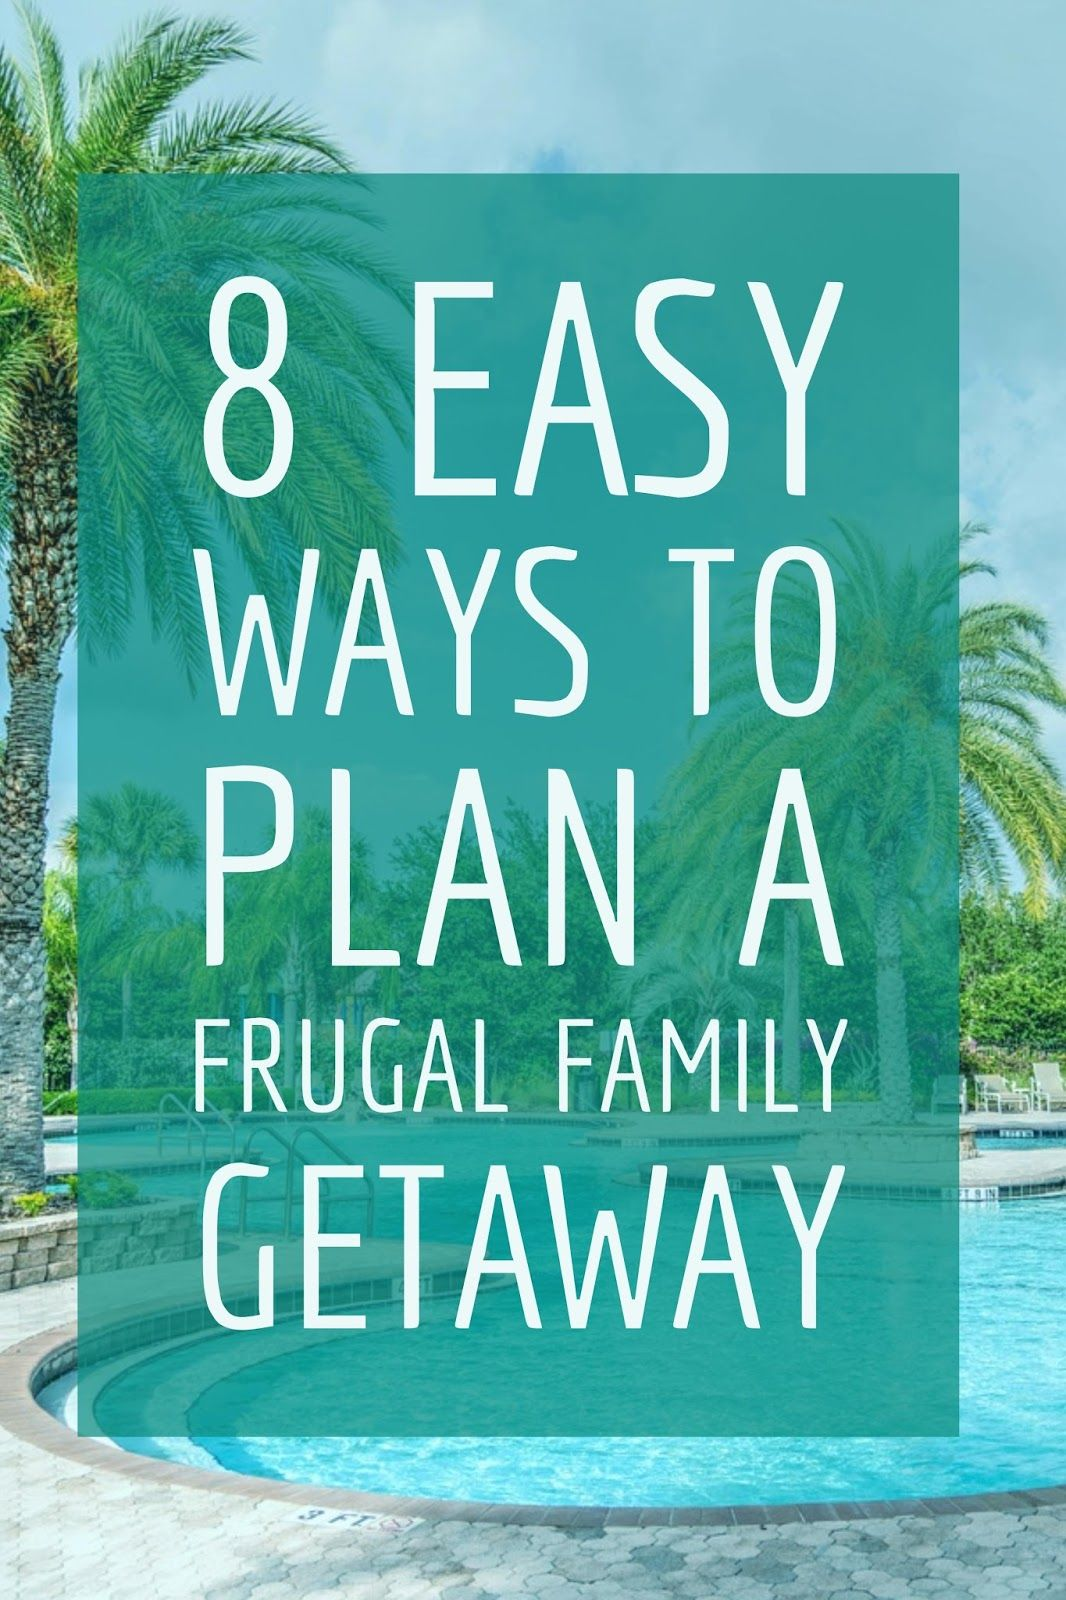 Kathys Cluttered Mind: 5 Ways to Plan a Frugal Family Getaway